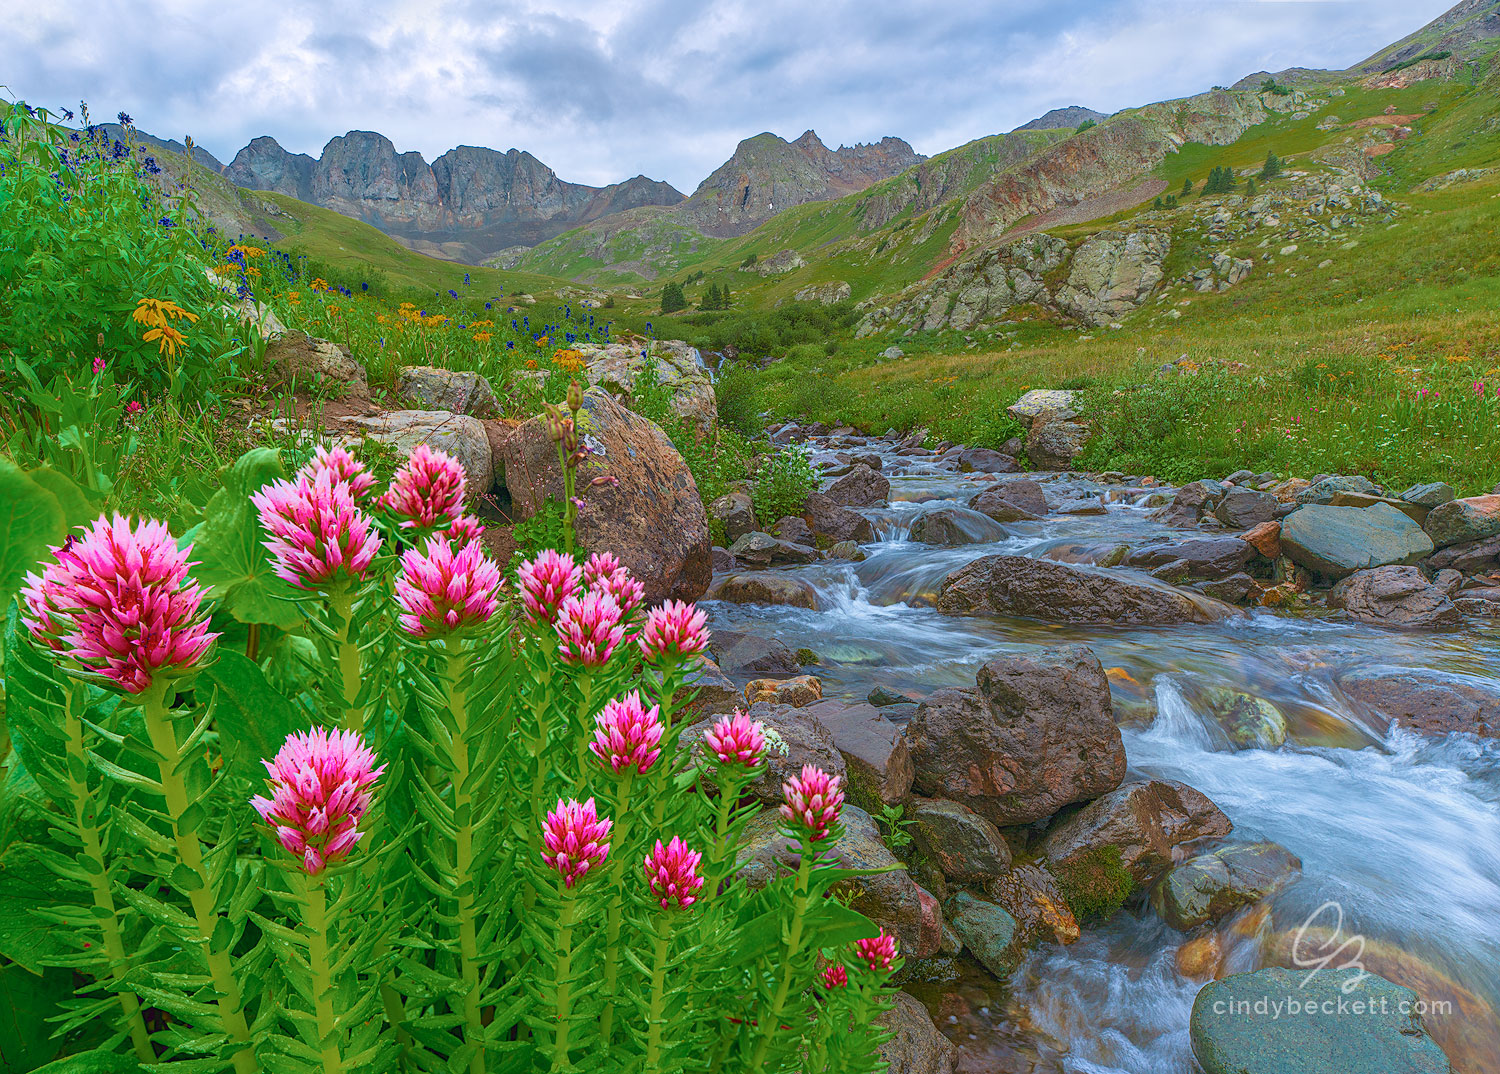 Queen's Crown (Rhodiola rhodantha) grows along a rocky stream in this high alpine meadow  beneath the vertical cliff faces of...